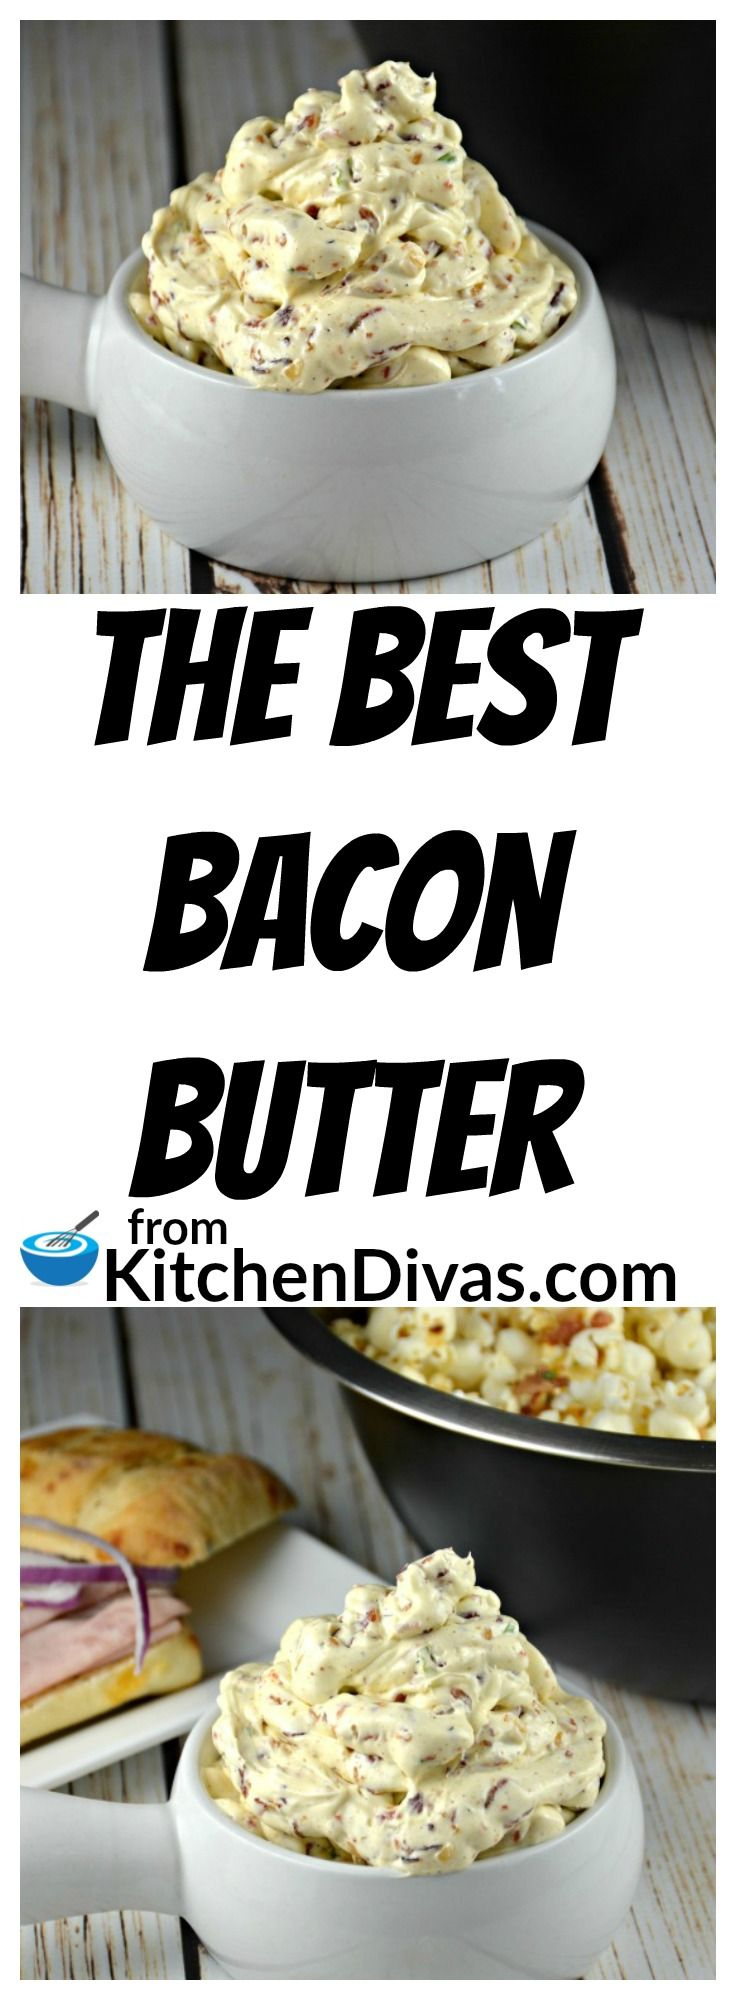 This recipe for the Best Bacon Butter is divine! We have used it on anything and everything that you use butter with! You are only limited by your imagination! Think about it! Eggs, popcorn, potatoes, steak and sandwiches! The possibilities are endless!